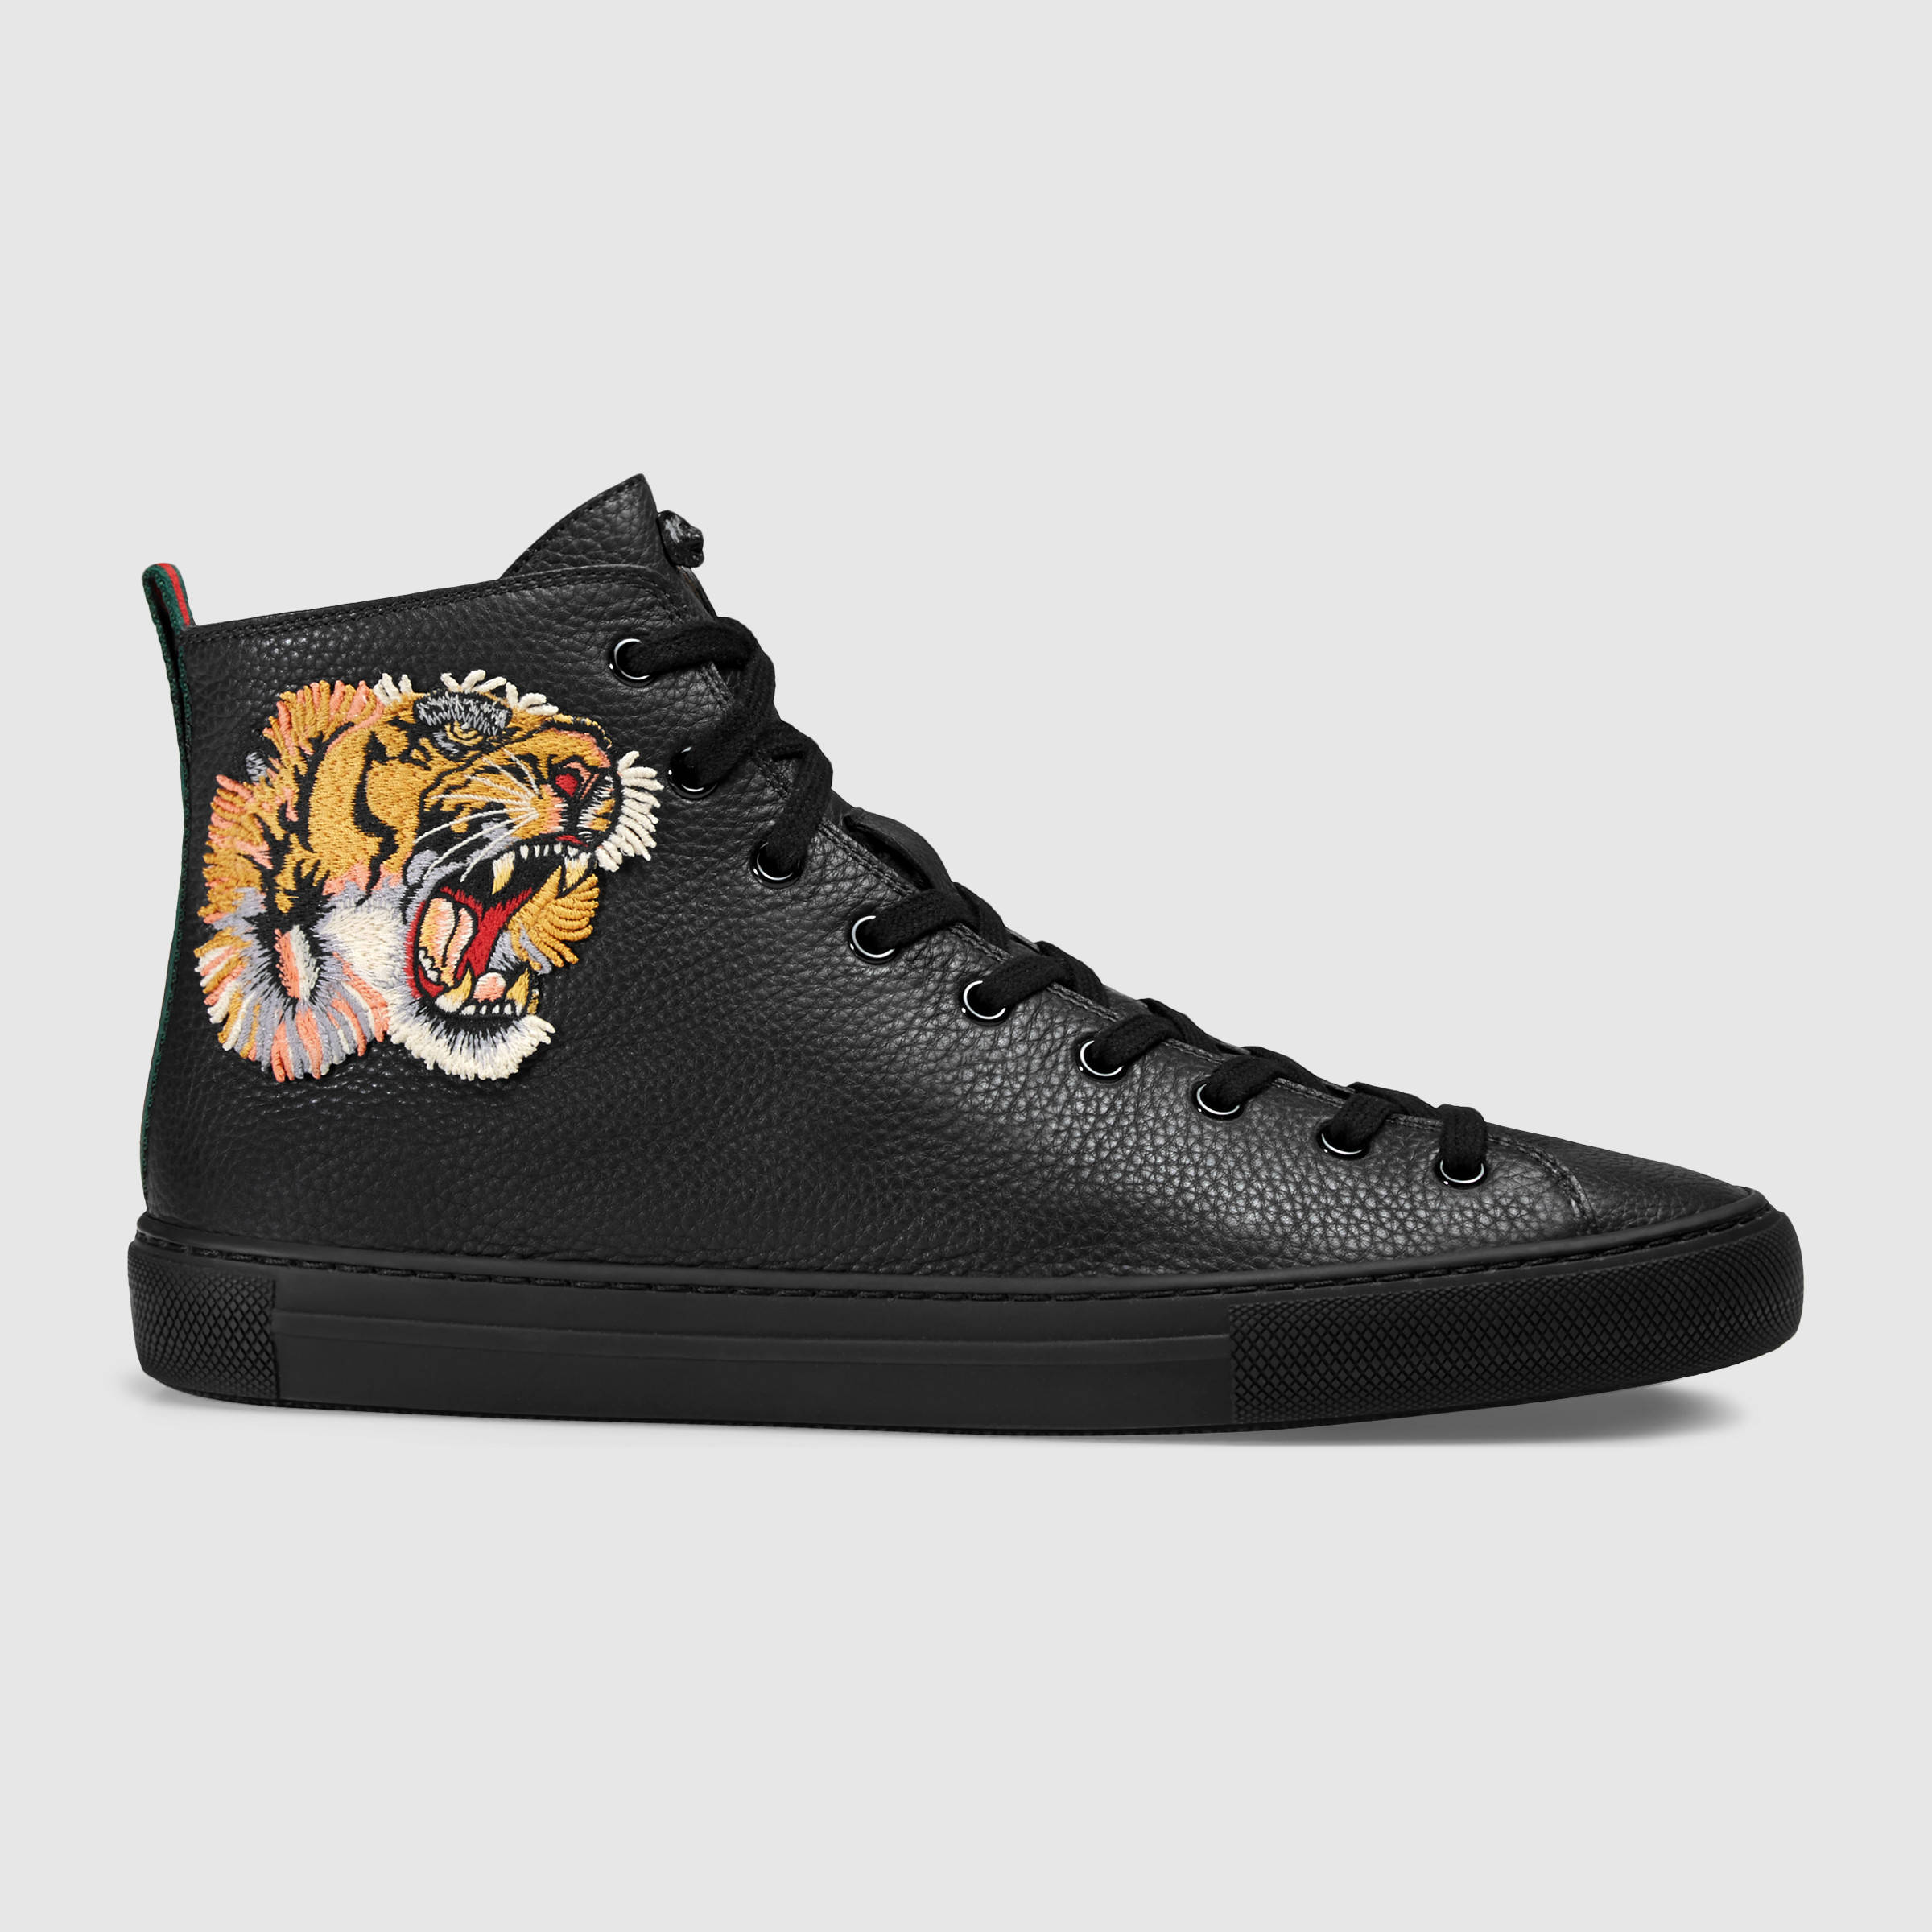 08dcd3f25 Very Goods   Leather high-top with tiger - Gucci Men's Sneakers ...